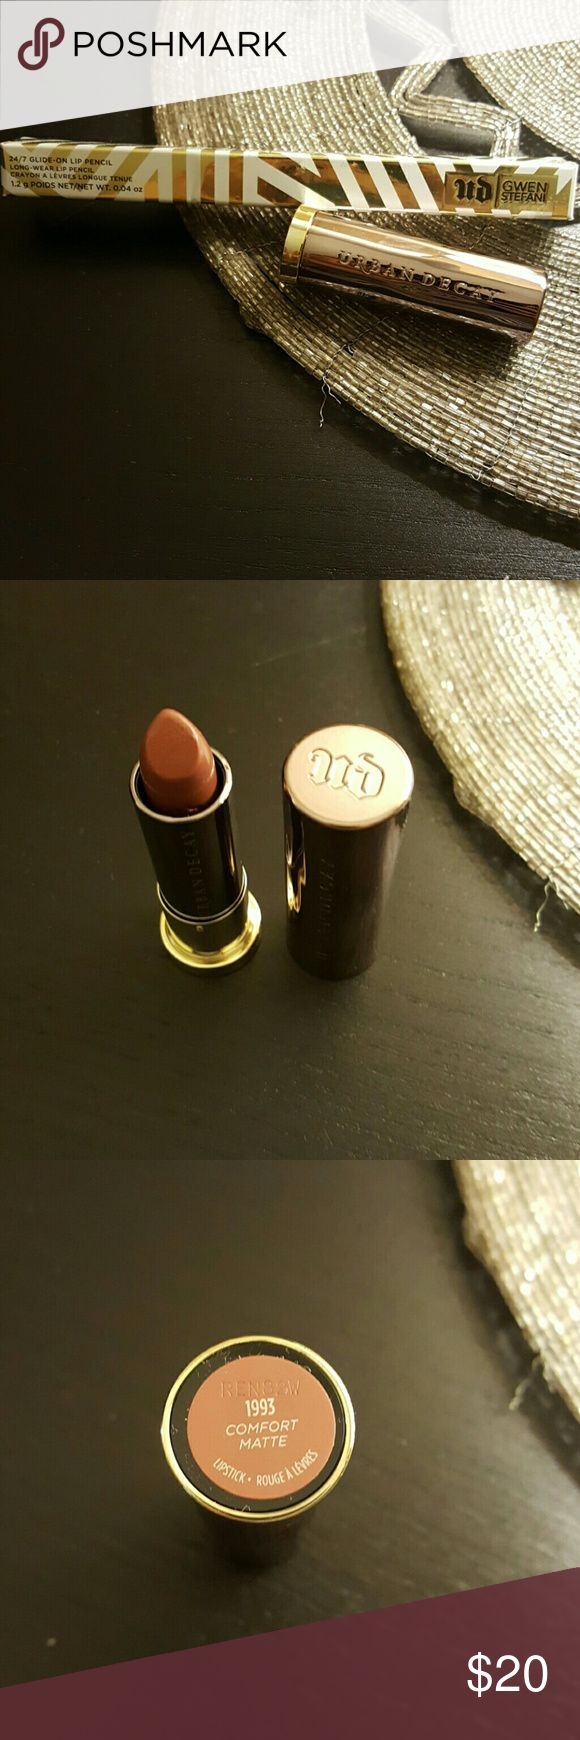 Urban Decay Lipstick and Lip liner Duo 2pc Urban Decay set includes lip liner in Firebird by Gwen Stefani for Urban Decay, and matte lipstick in Comfort. Lip liner is brand new in box, and lipstick is like new but was tested. Urban Decay Makeup Lip Liner